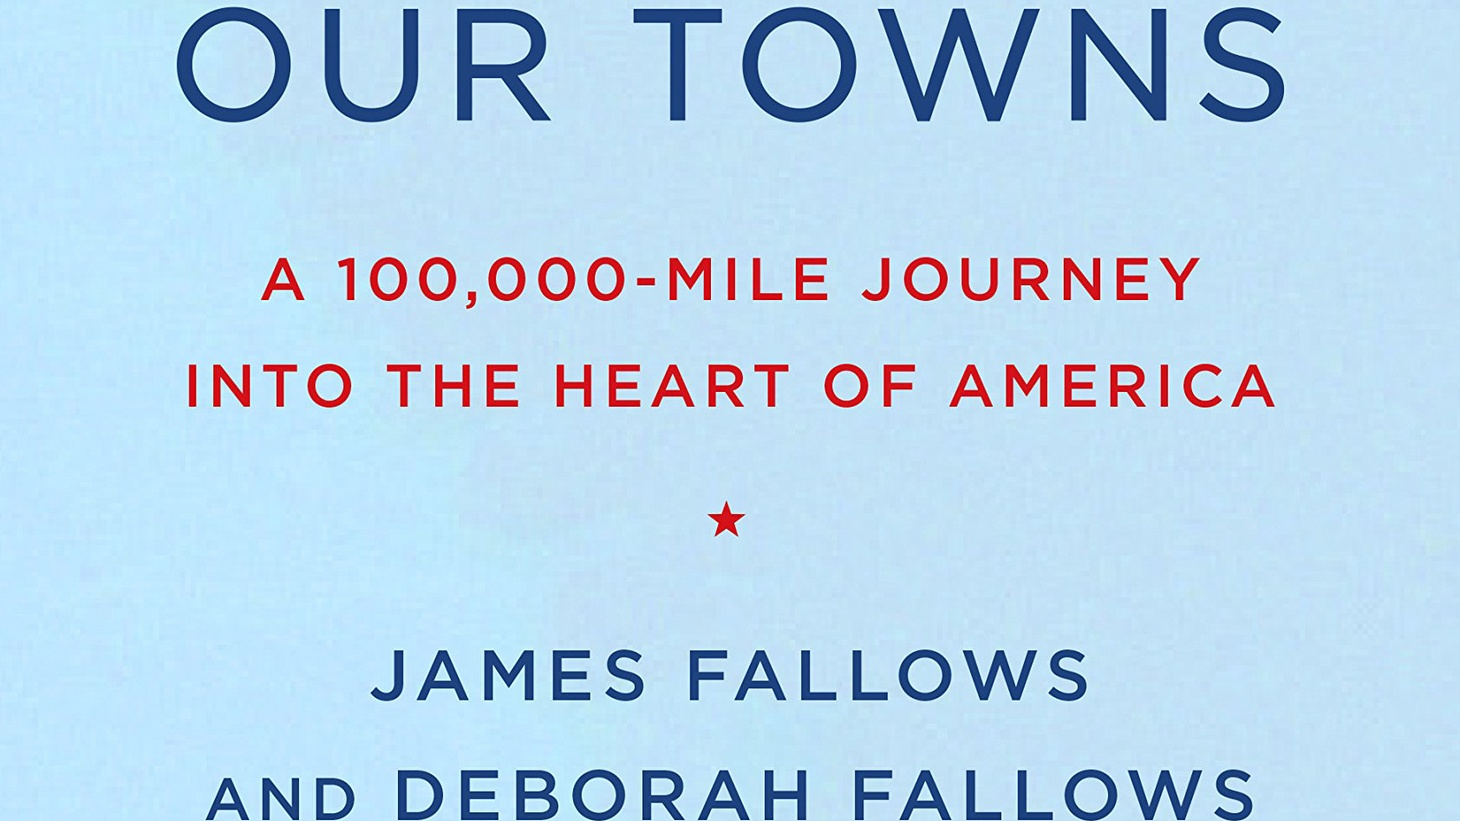 """Dodge City, Kansas and Erie, Pennsylvania may have something in common. That's just one surprise in """"Our Towns,"""" a new book by James and Deborah Fallows."""